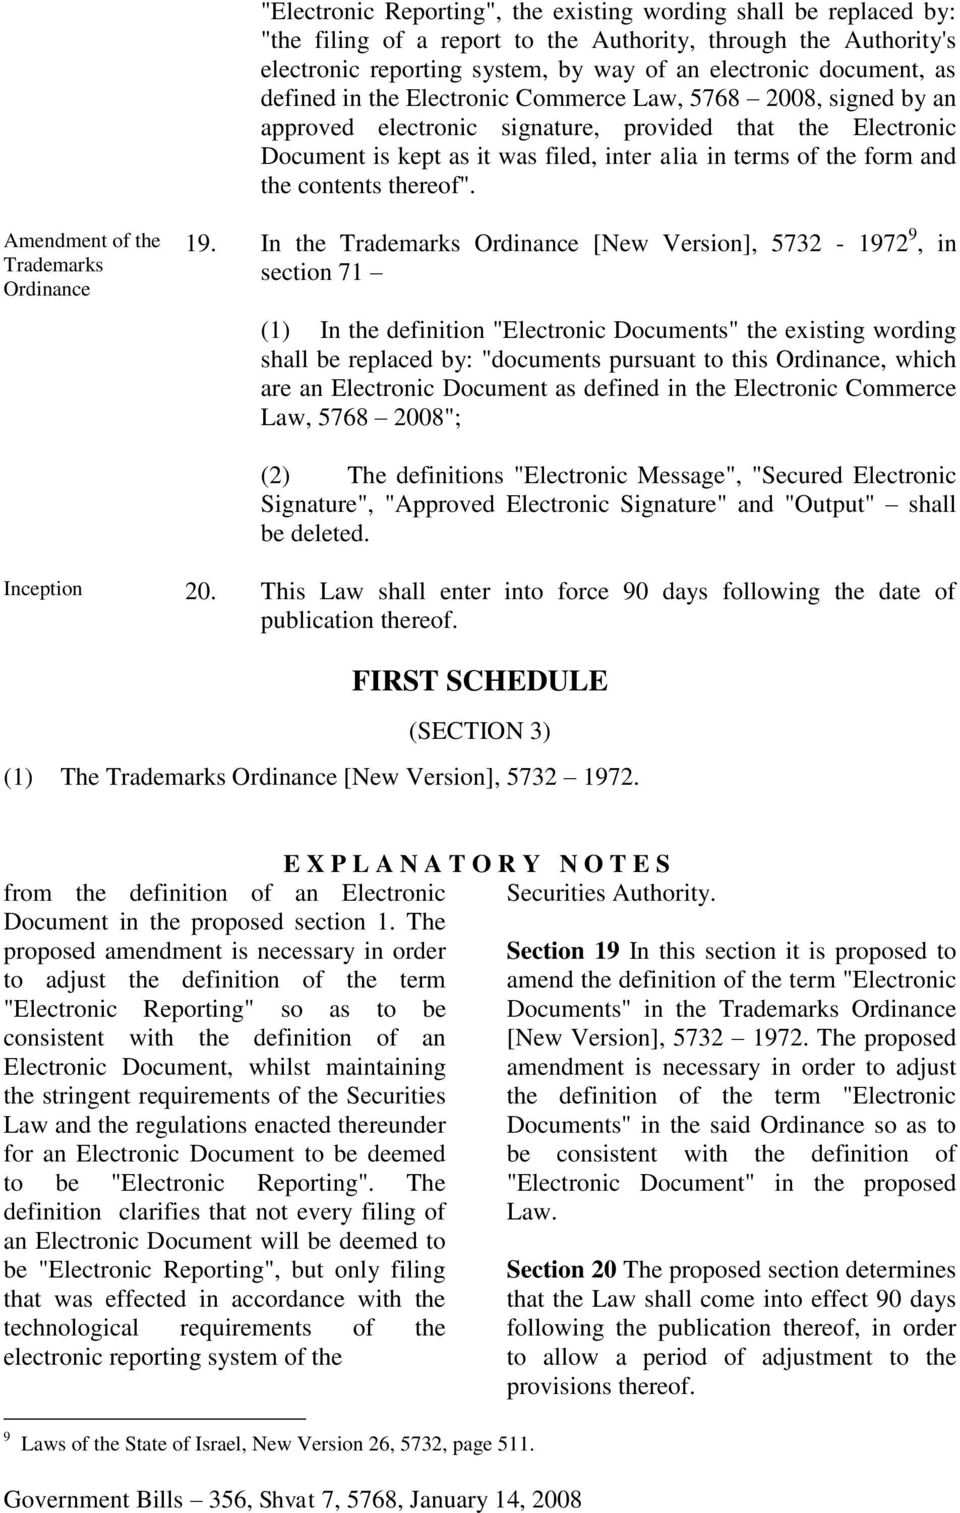 "contents thereof"". Amendment of the Trademarks Ordinance 19."